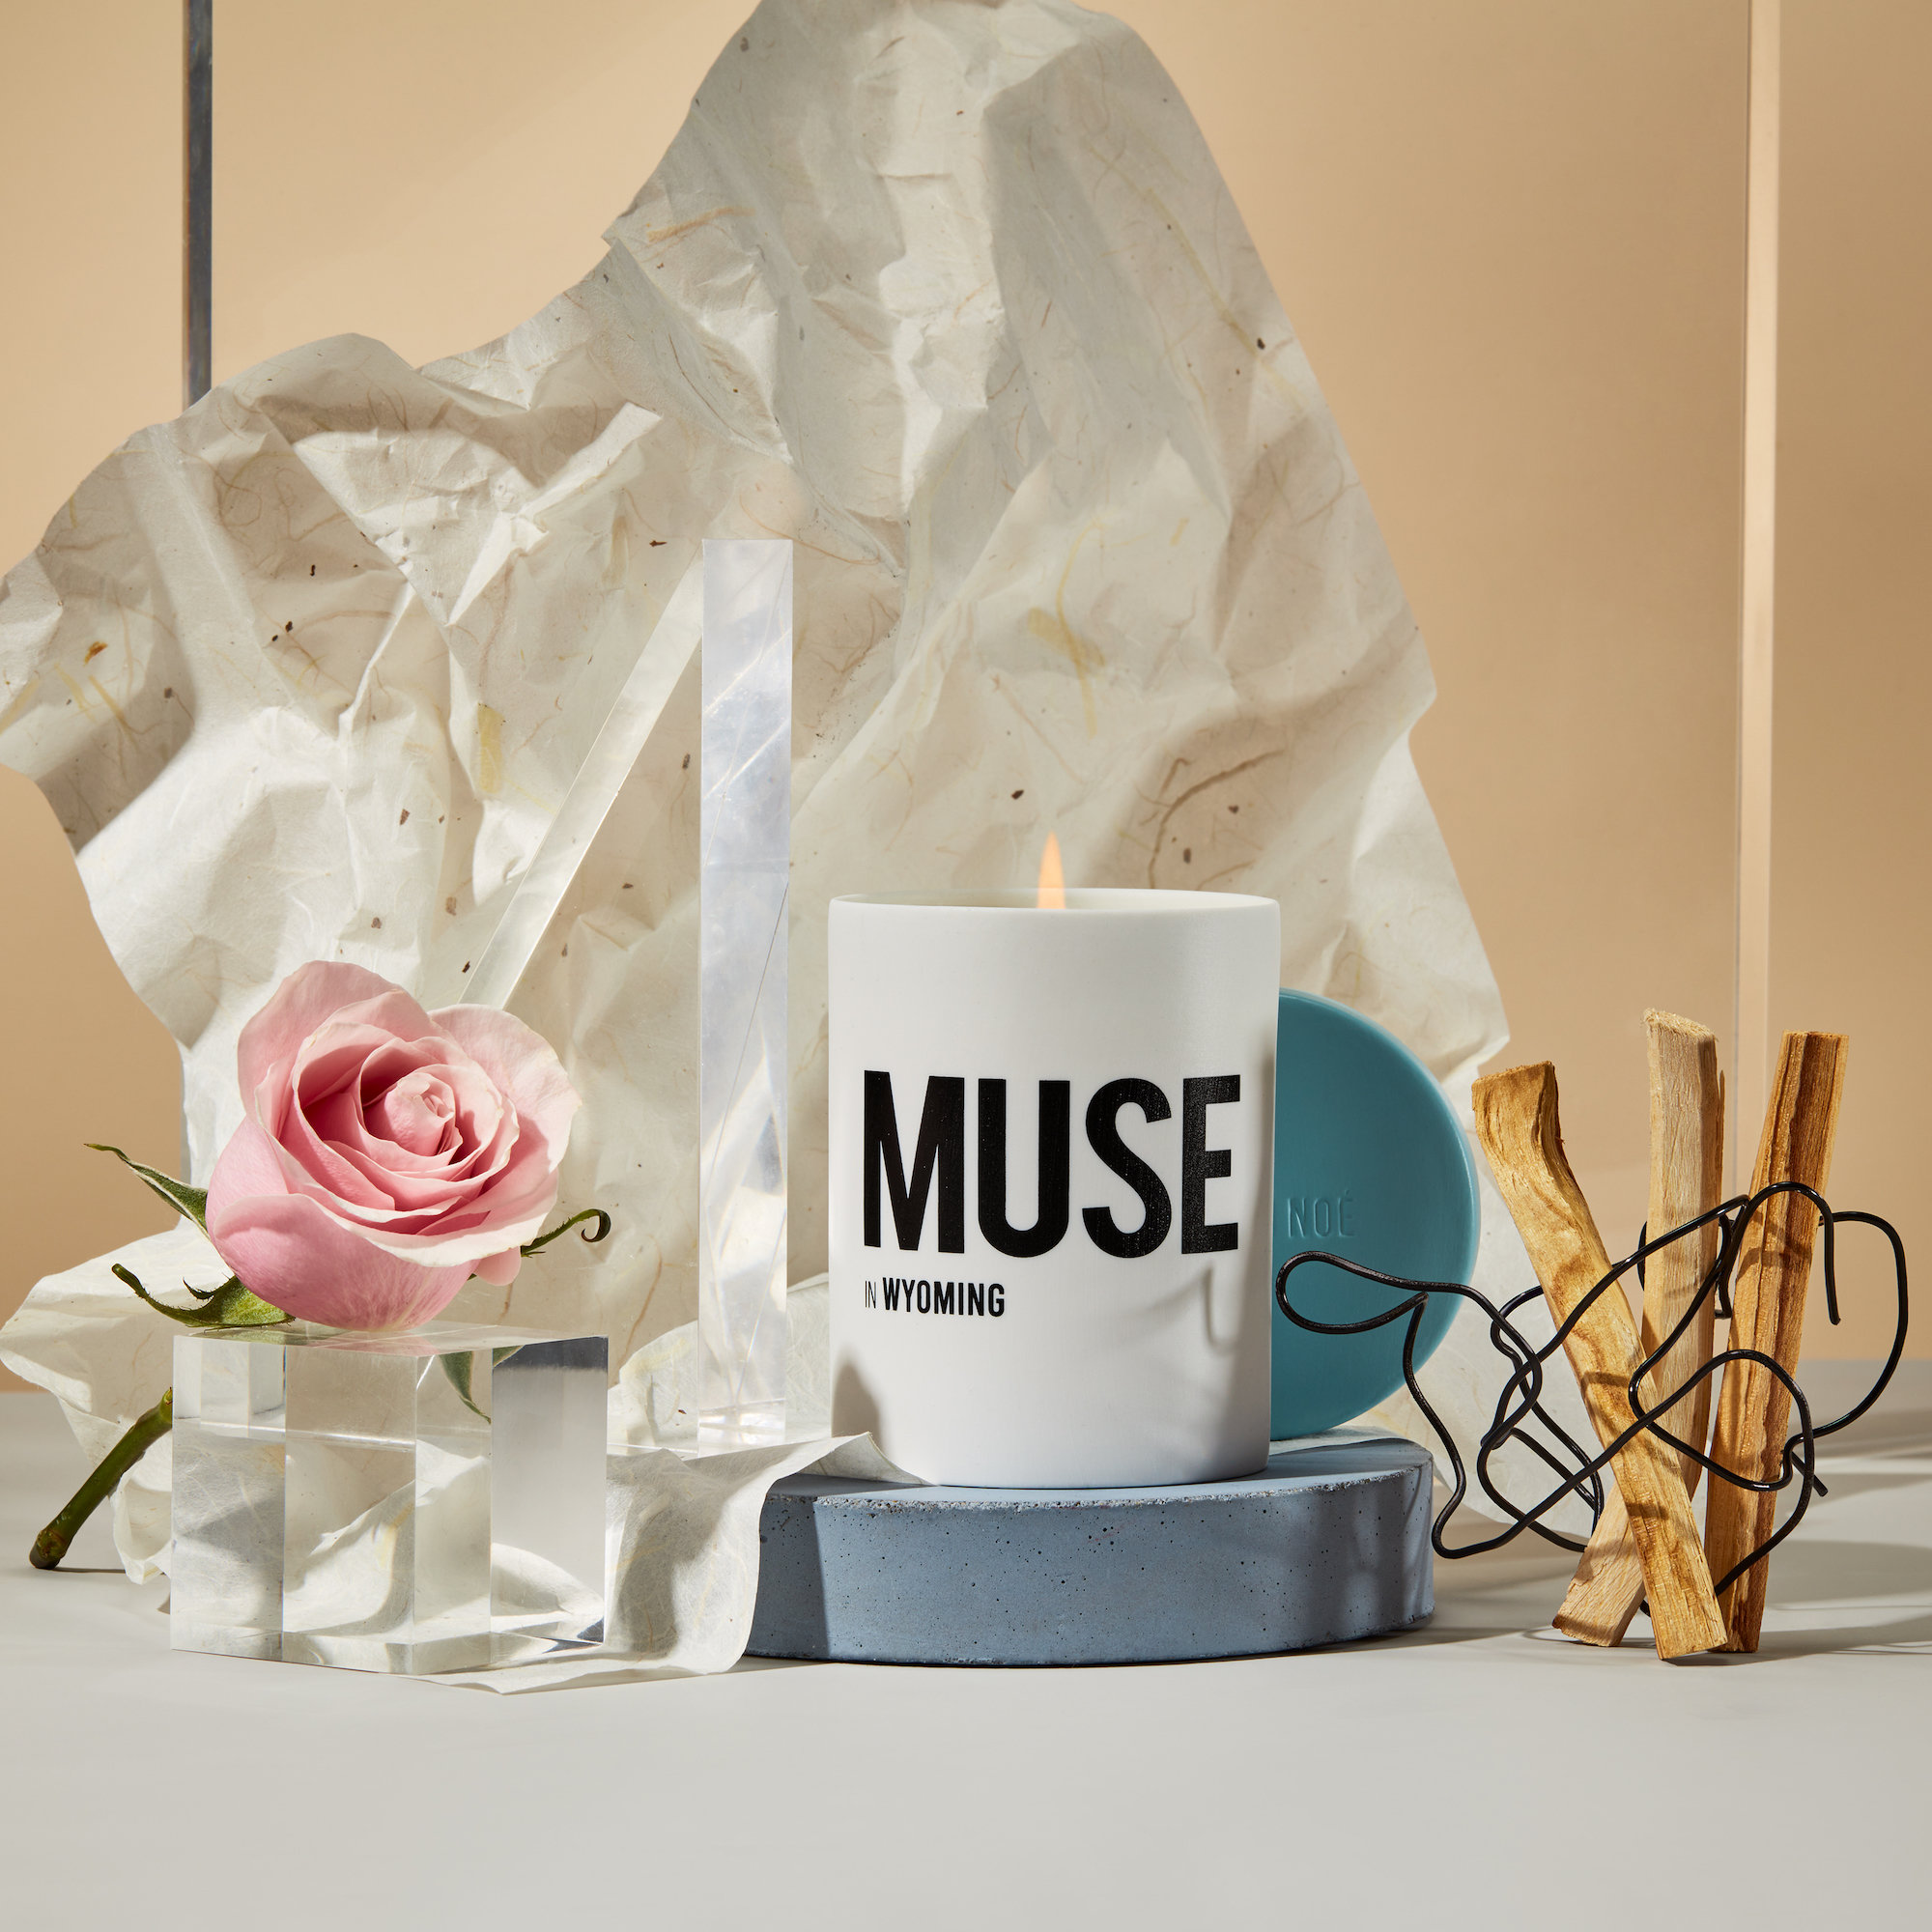 Alternate product image for Muse in Wyoming - Rosa Woodsii & Sandalwood shown with the description.